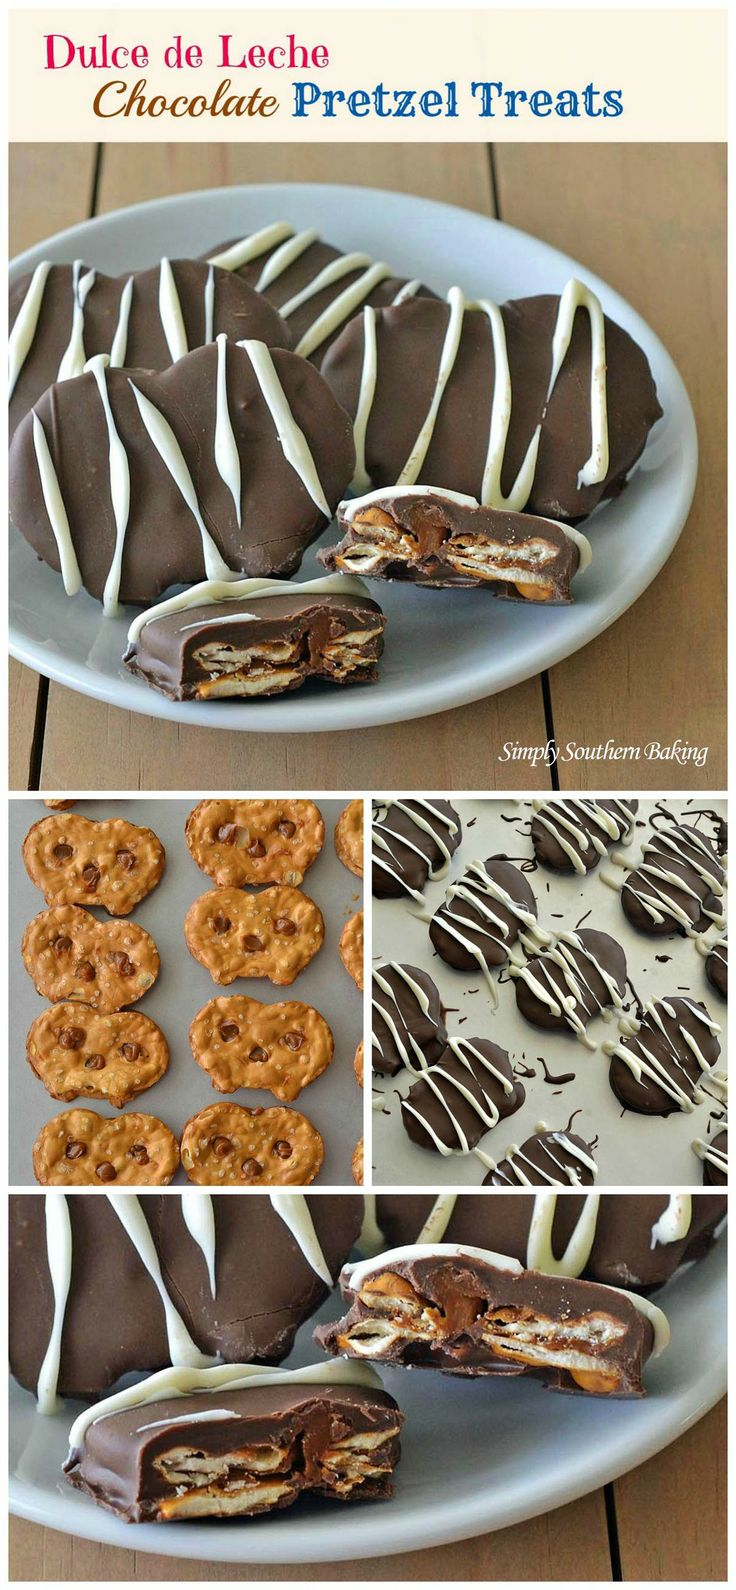 Dulce de Leche Chocolate Pretzel Treats | Simply Southern Baking